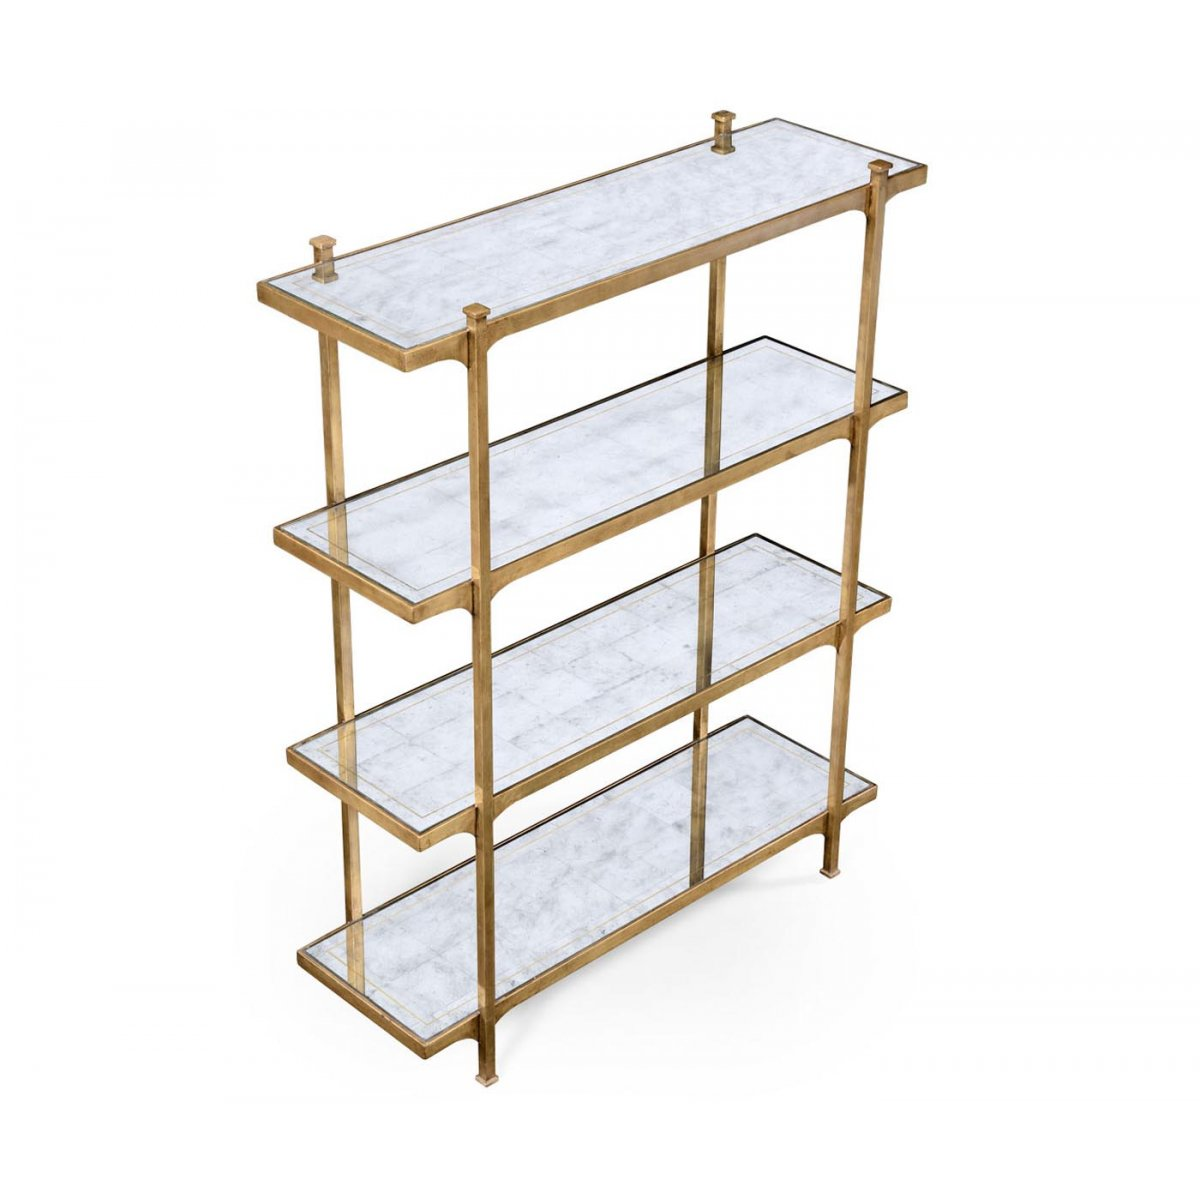 Glass Etagere Display Bookcase  Swanky Interiors. Flow Wall. Single Sofa Chair. 60 Vanity Single Sink. Partition Doors. White Buddha Statue. Outdoor Plastic Rugs. Handbag Rack. Bathroom Vanity With Sink